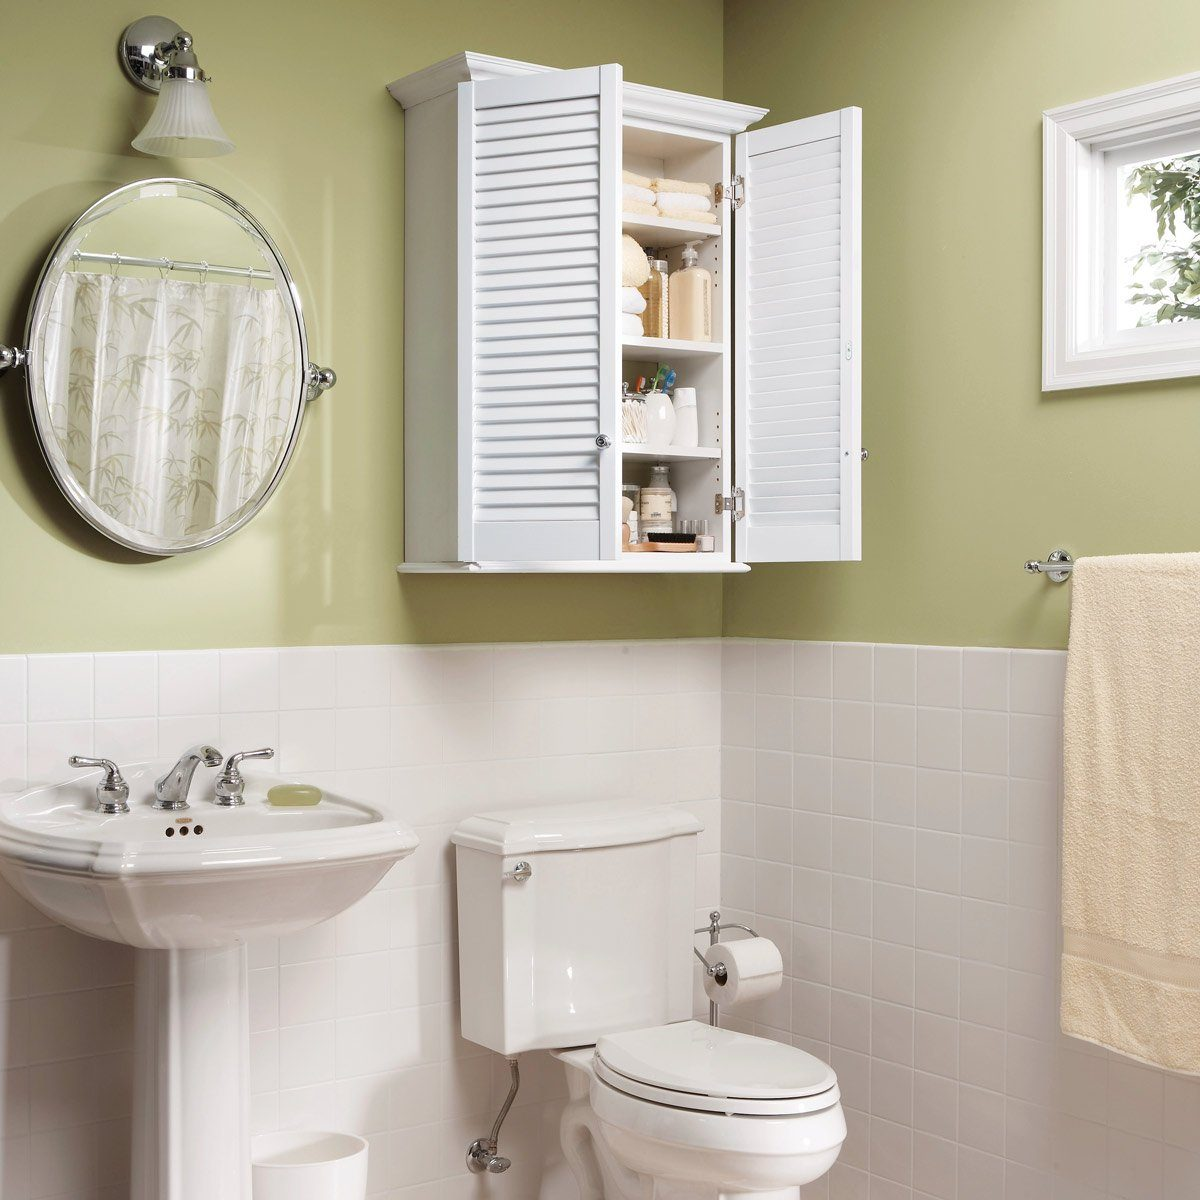 FH07OCT_482_56_031 super simple bathroom cabinet